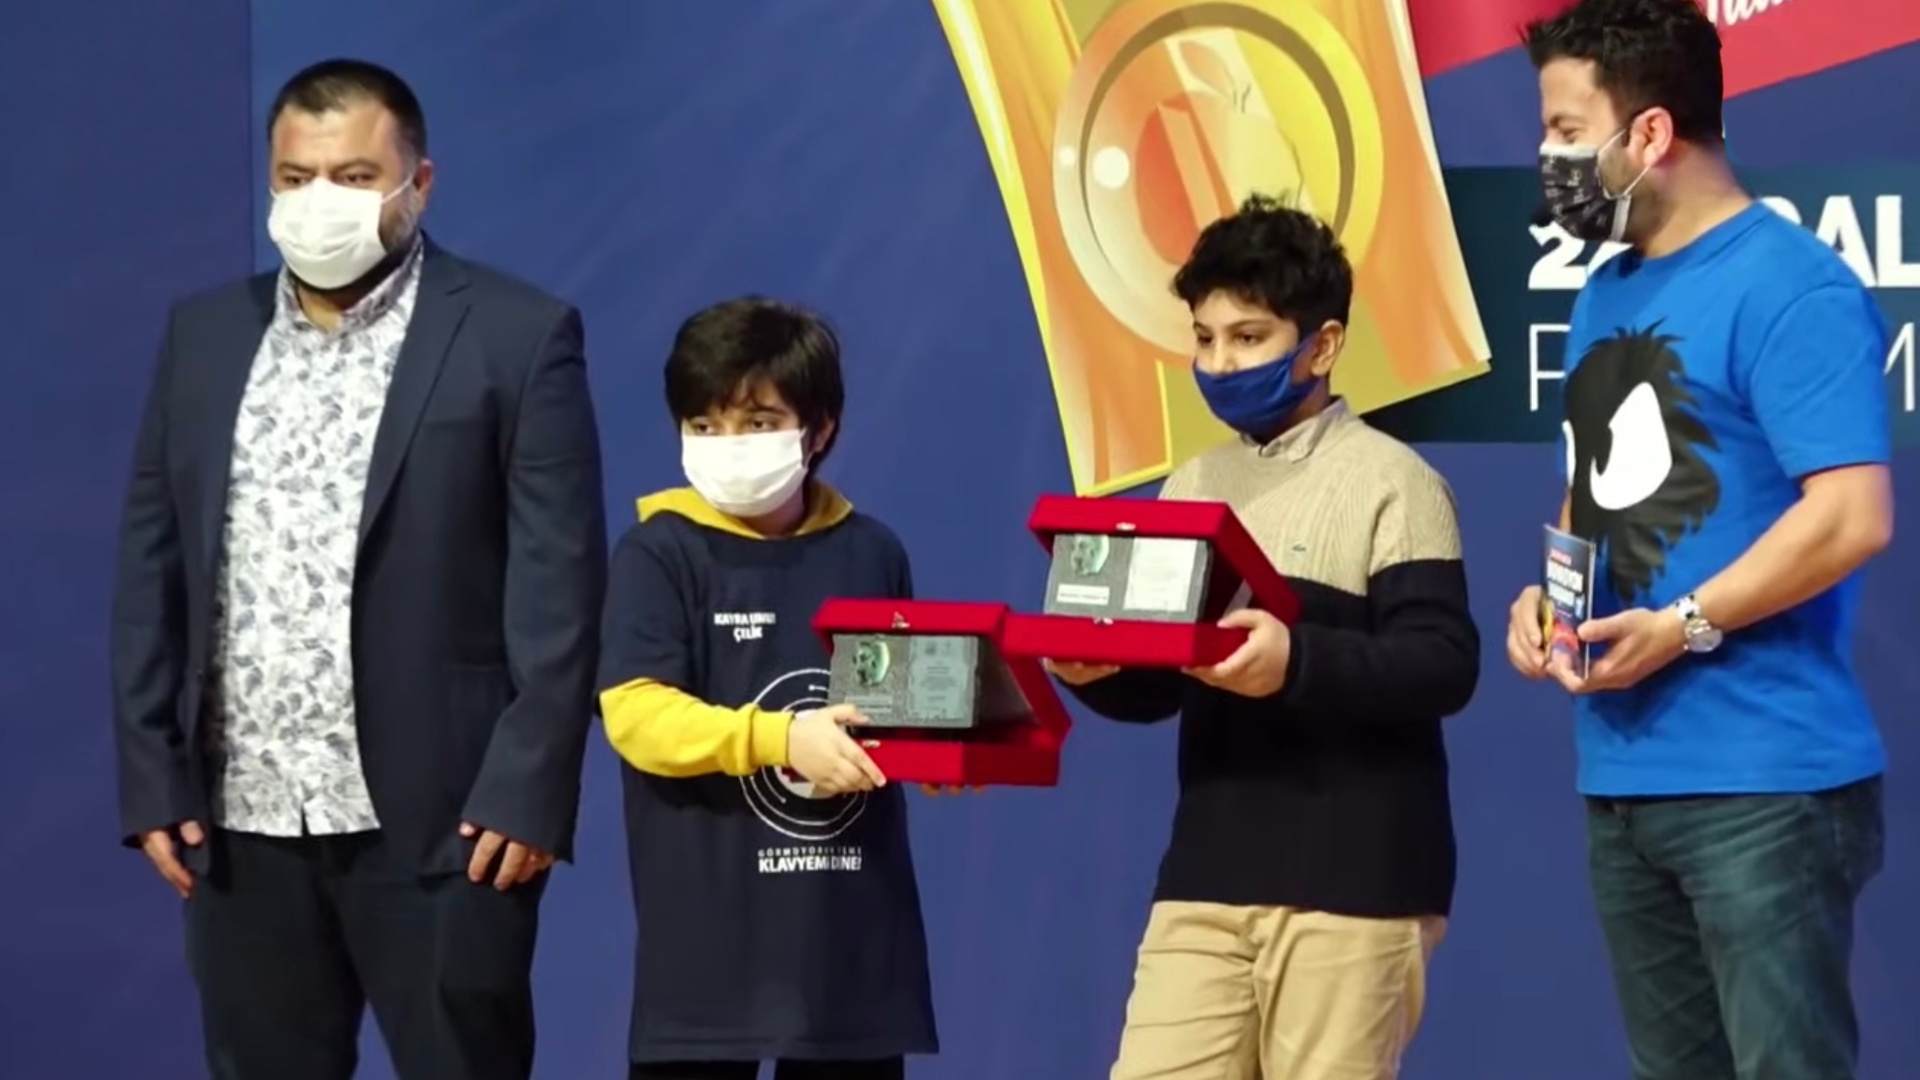 Our Students' Tech Project for Humanity Awarded!